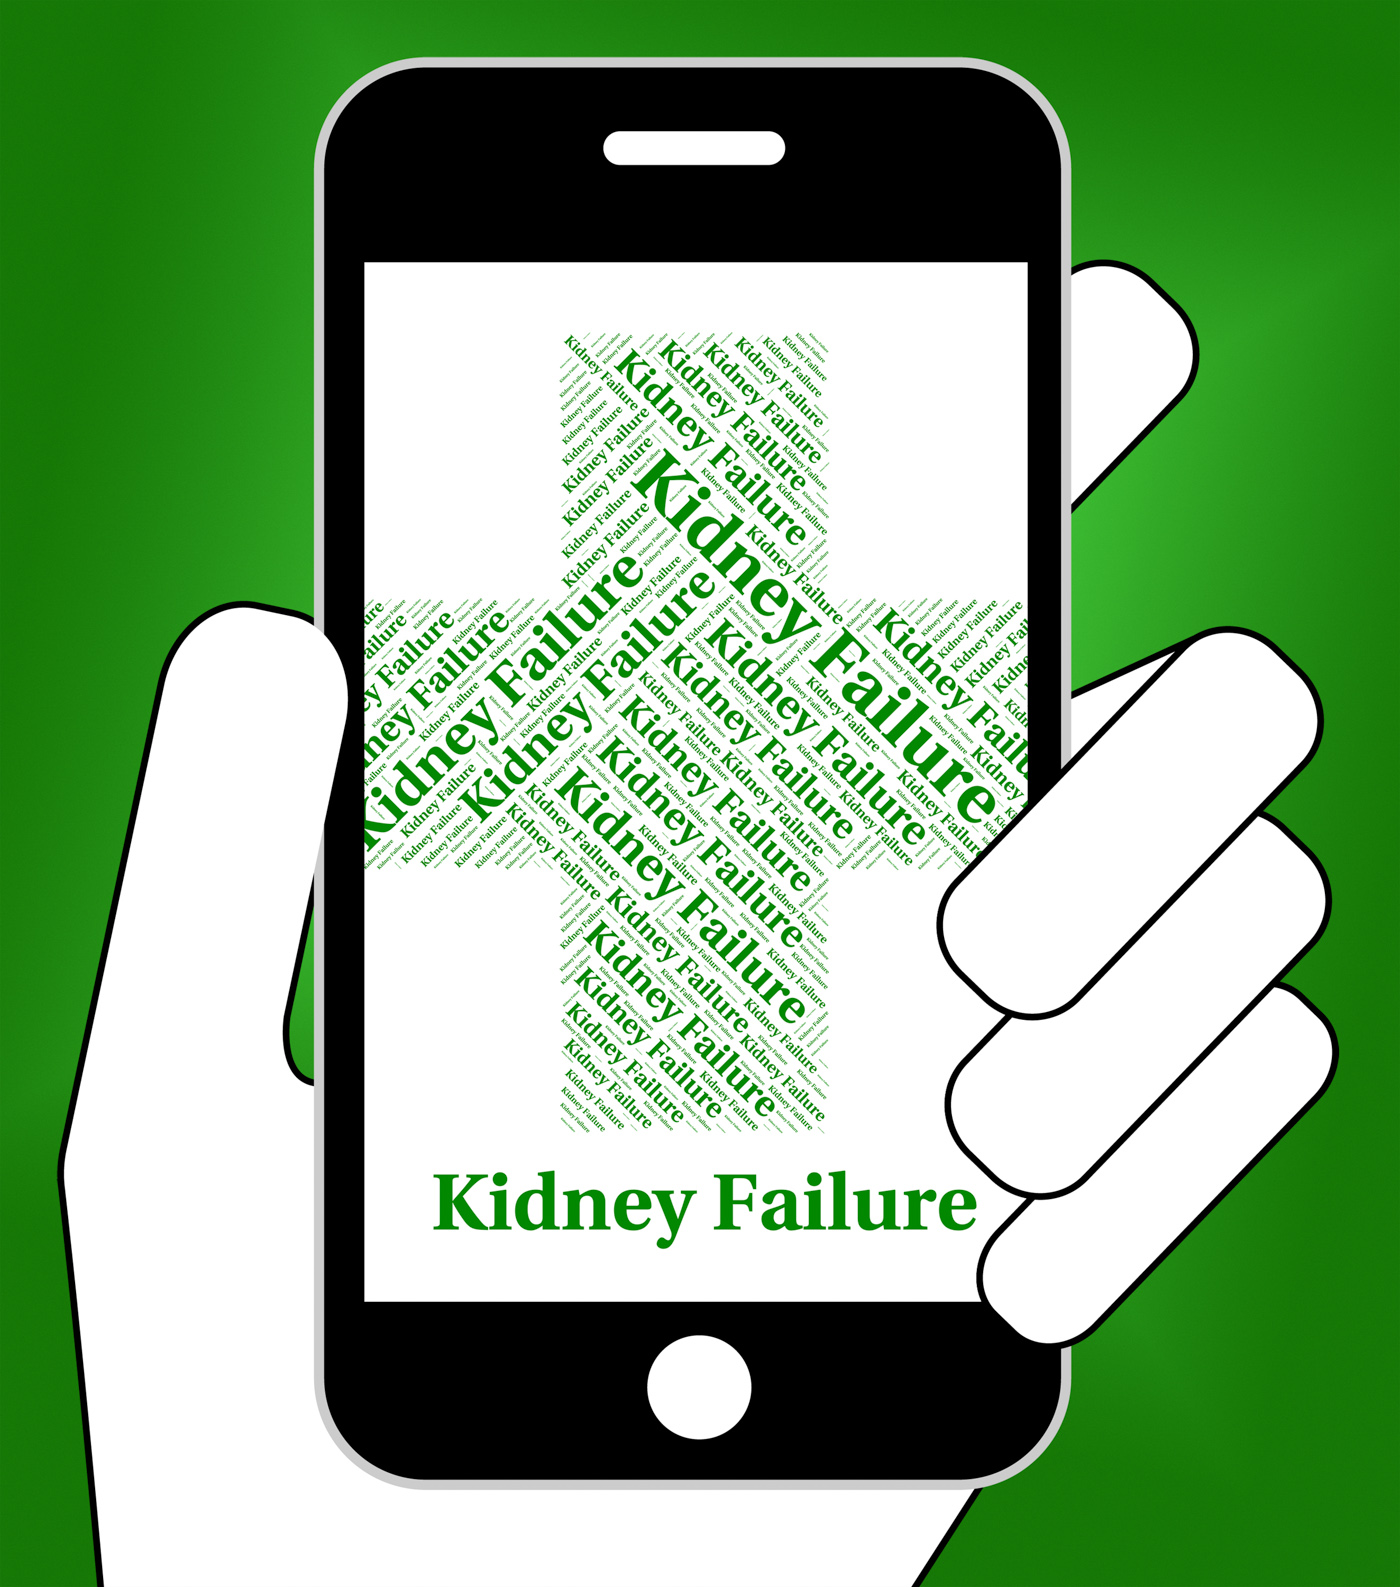 Kidney Failure Indicates Lack Of Success And Affliction, Affliction, Kidneyfailure, Indisposition, Infection, HQ Photo